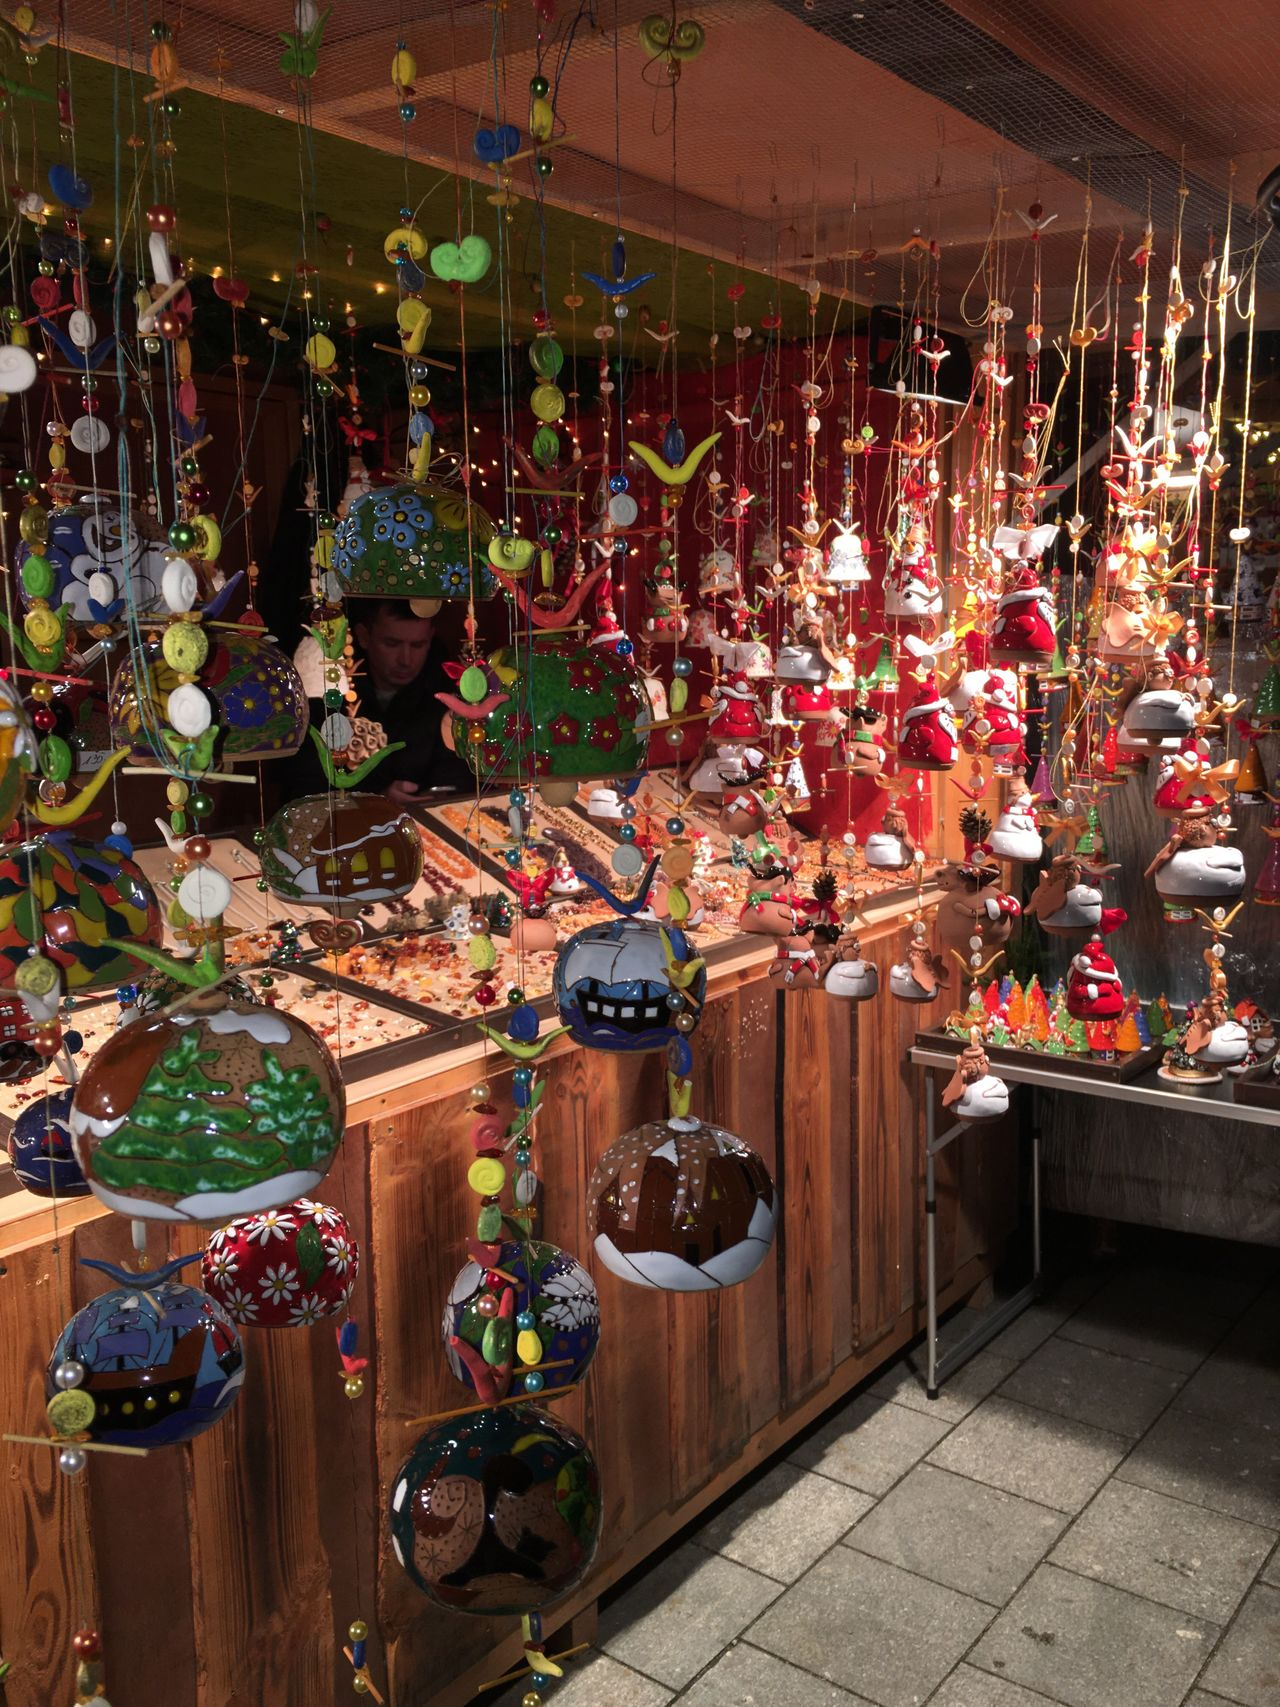 Celebration Retail  Indoors  Holiday - Event Variation Large Group Of Objects Figurine  No People Christmas Market Day